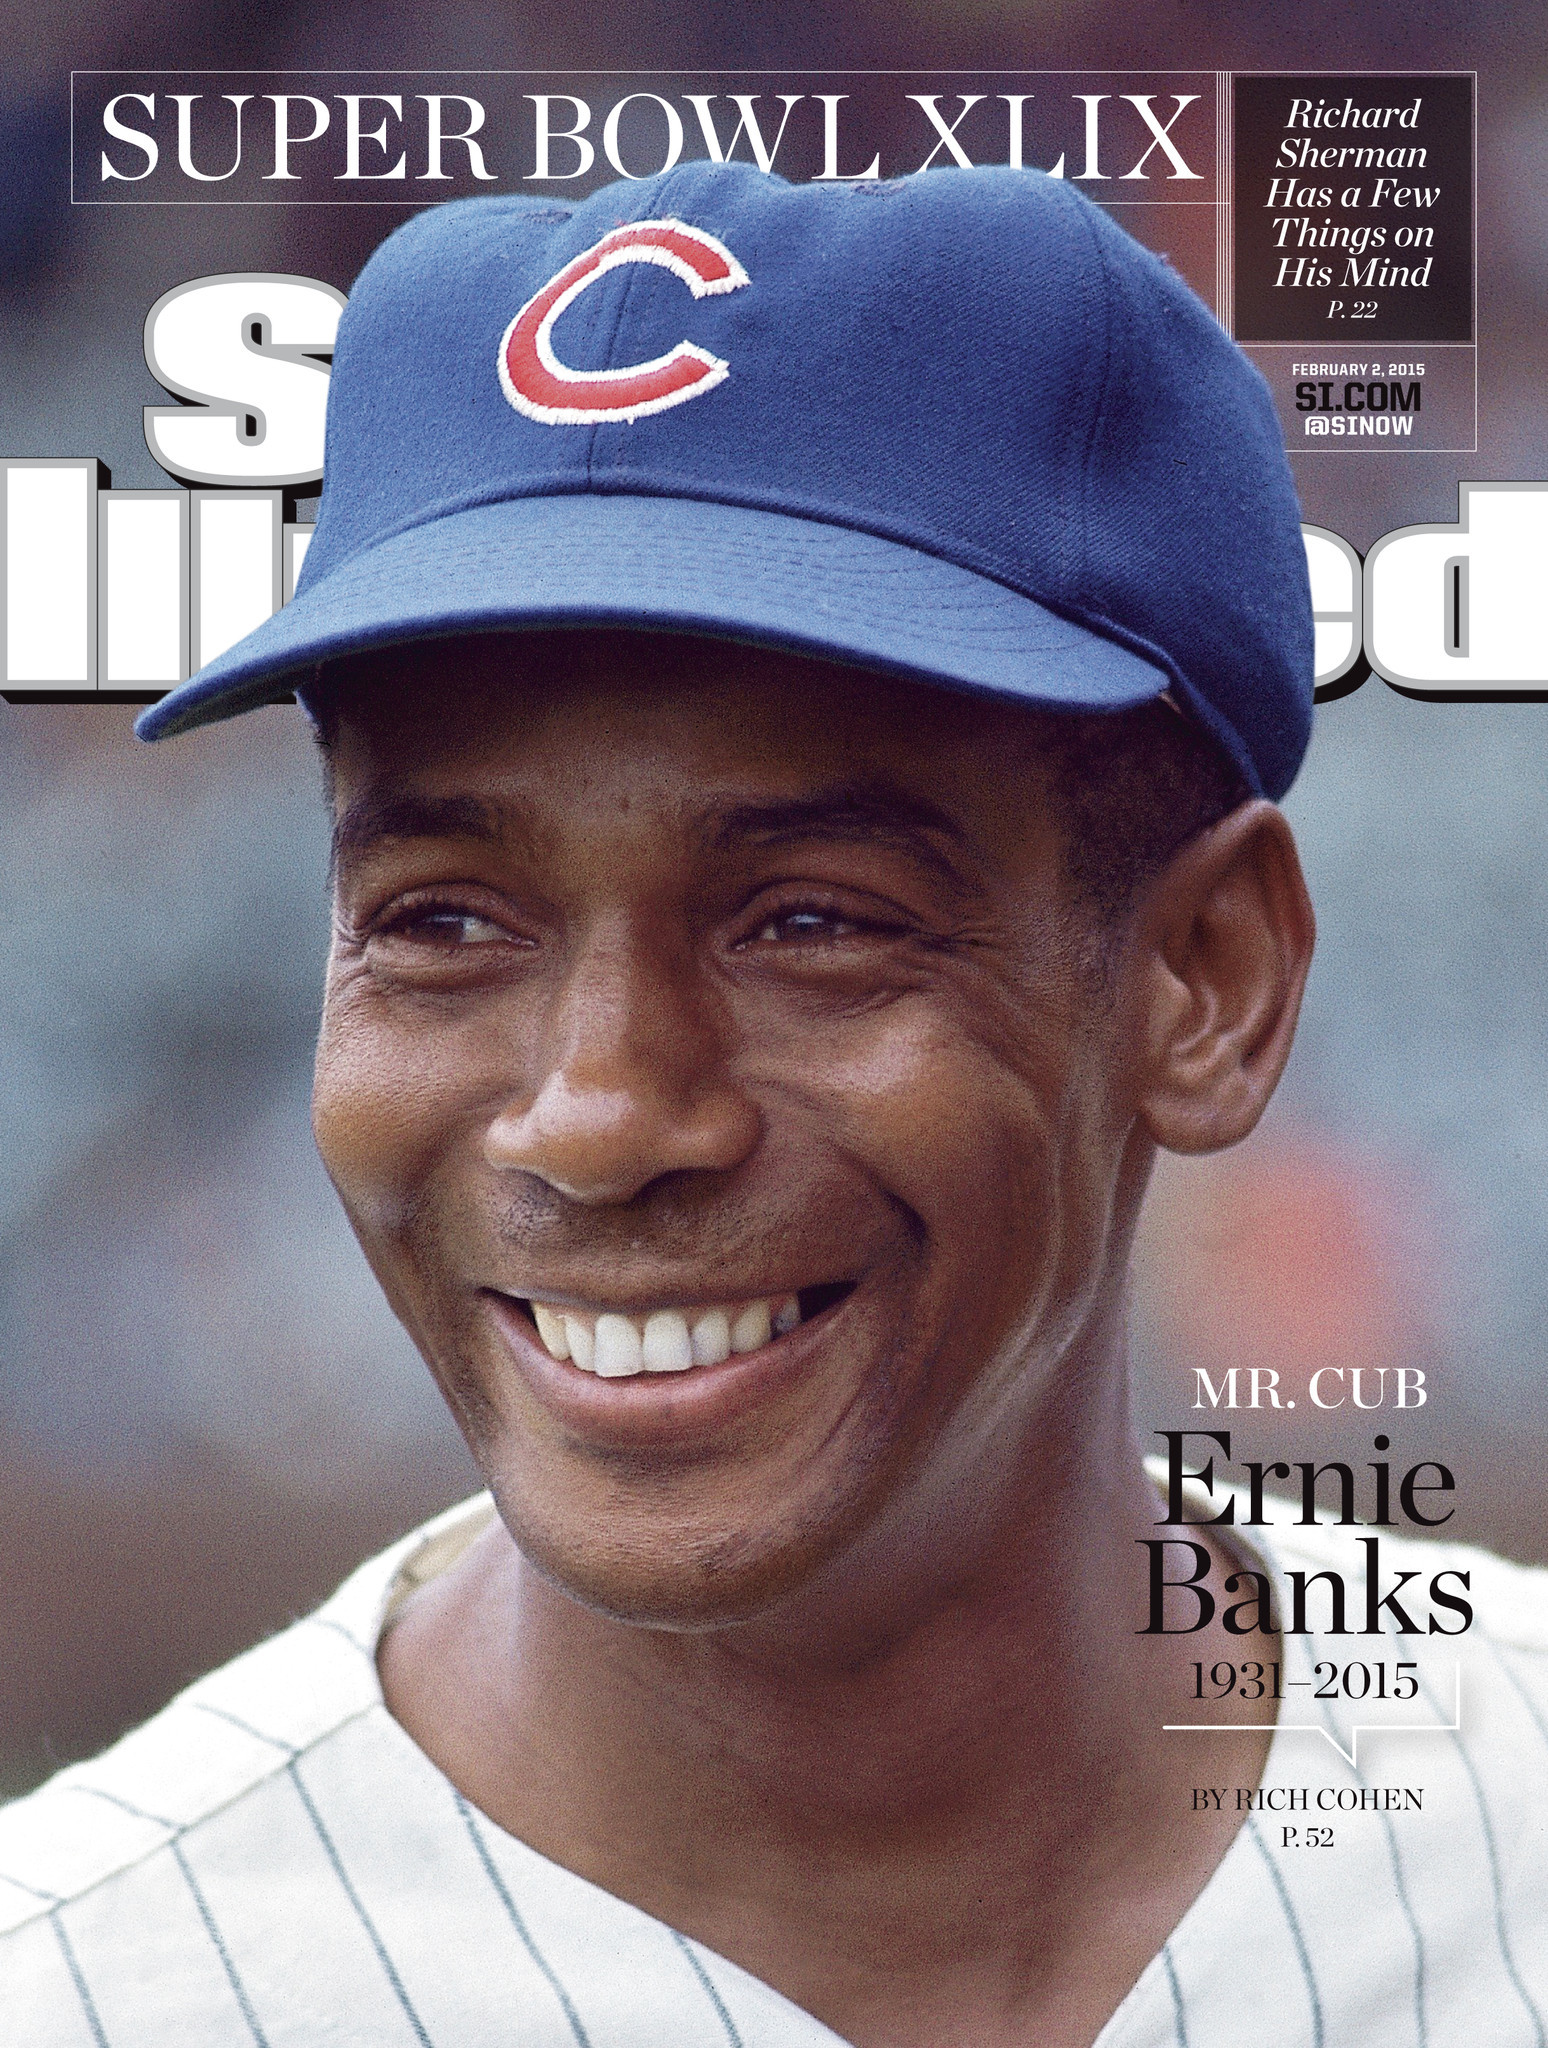 http://www.trbimg.com/img-54c91194/turbine/chi-cubs-ernie-banks-graces-sports-illustrated-cover-in-midwest-20150128